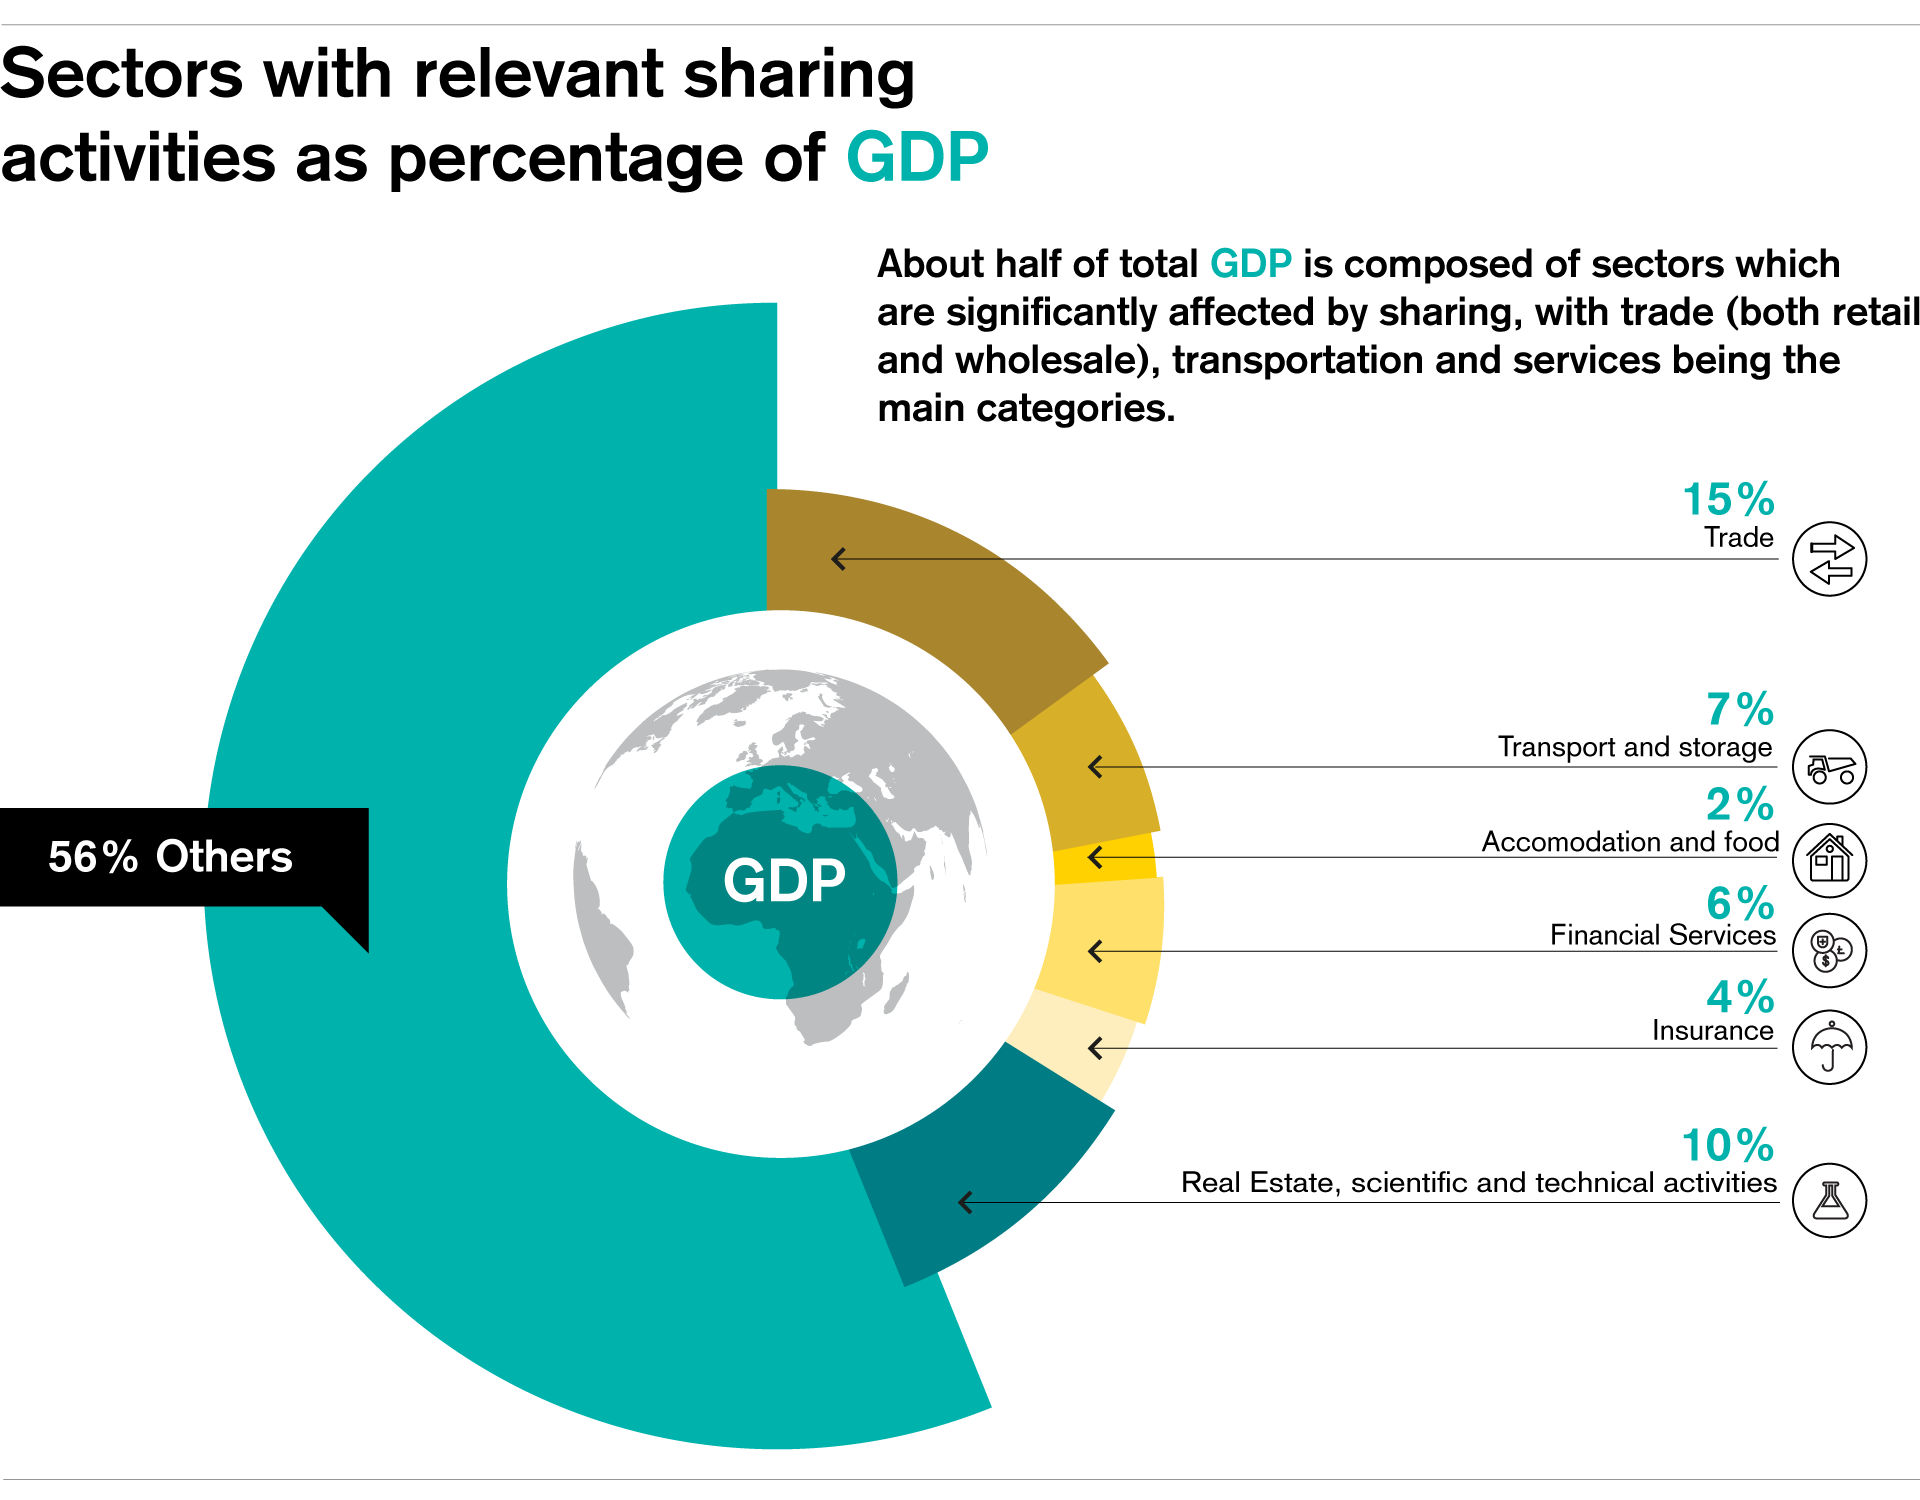 Sectors with relevant sharing activities as percentage of GDP